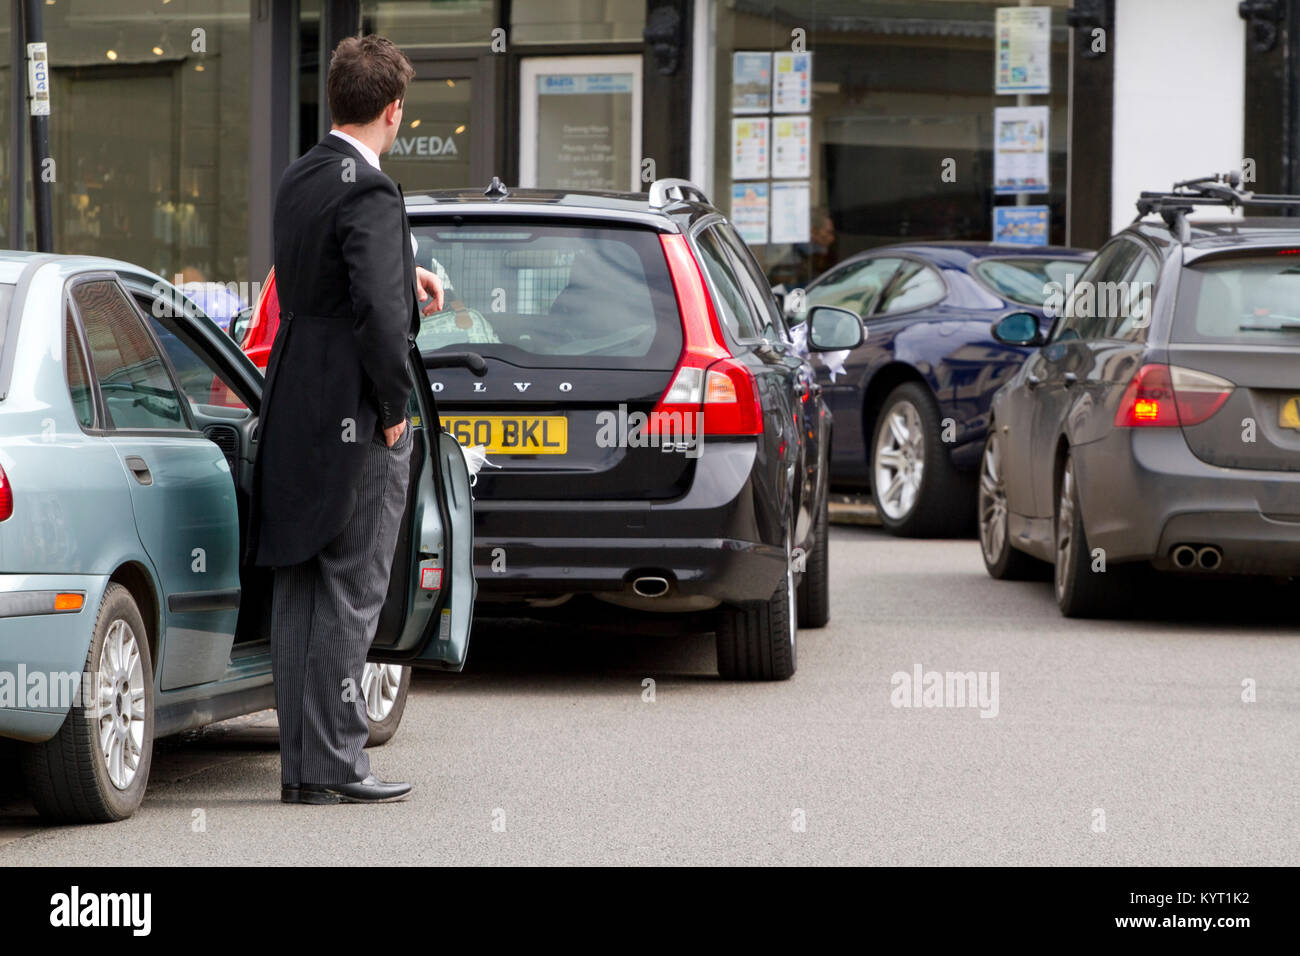 Man in a tail coat for a wedding stands by an open car door - Stock Image